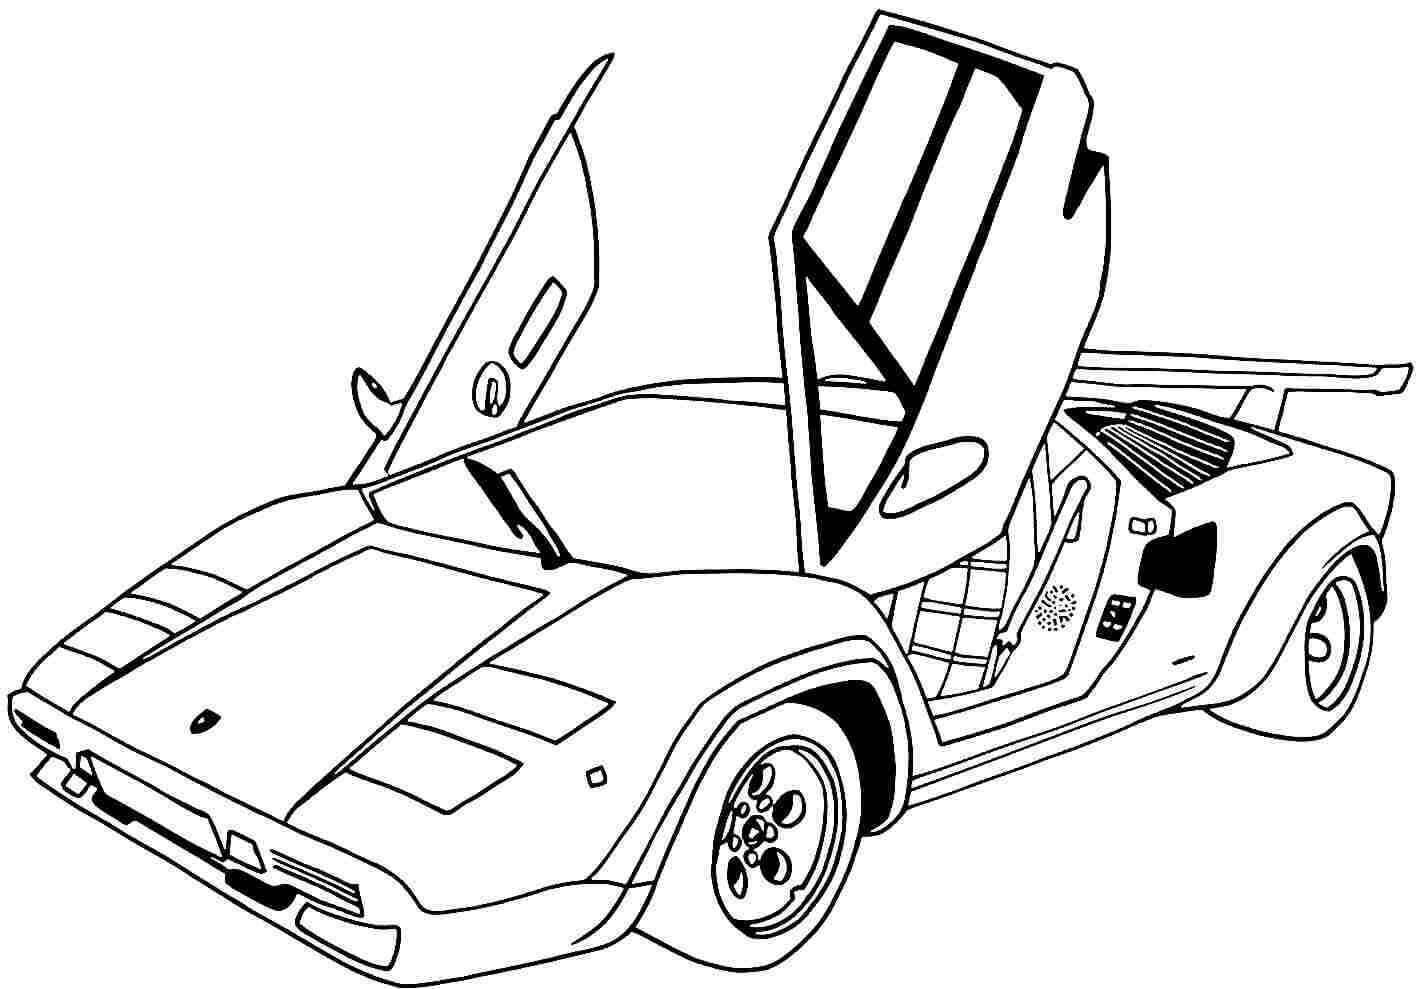 cool car colouring pages cool vehicle coloring pictures for kids to print colouring cool pages car